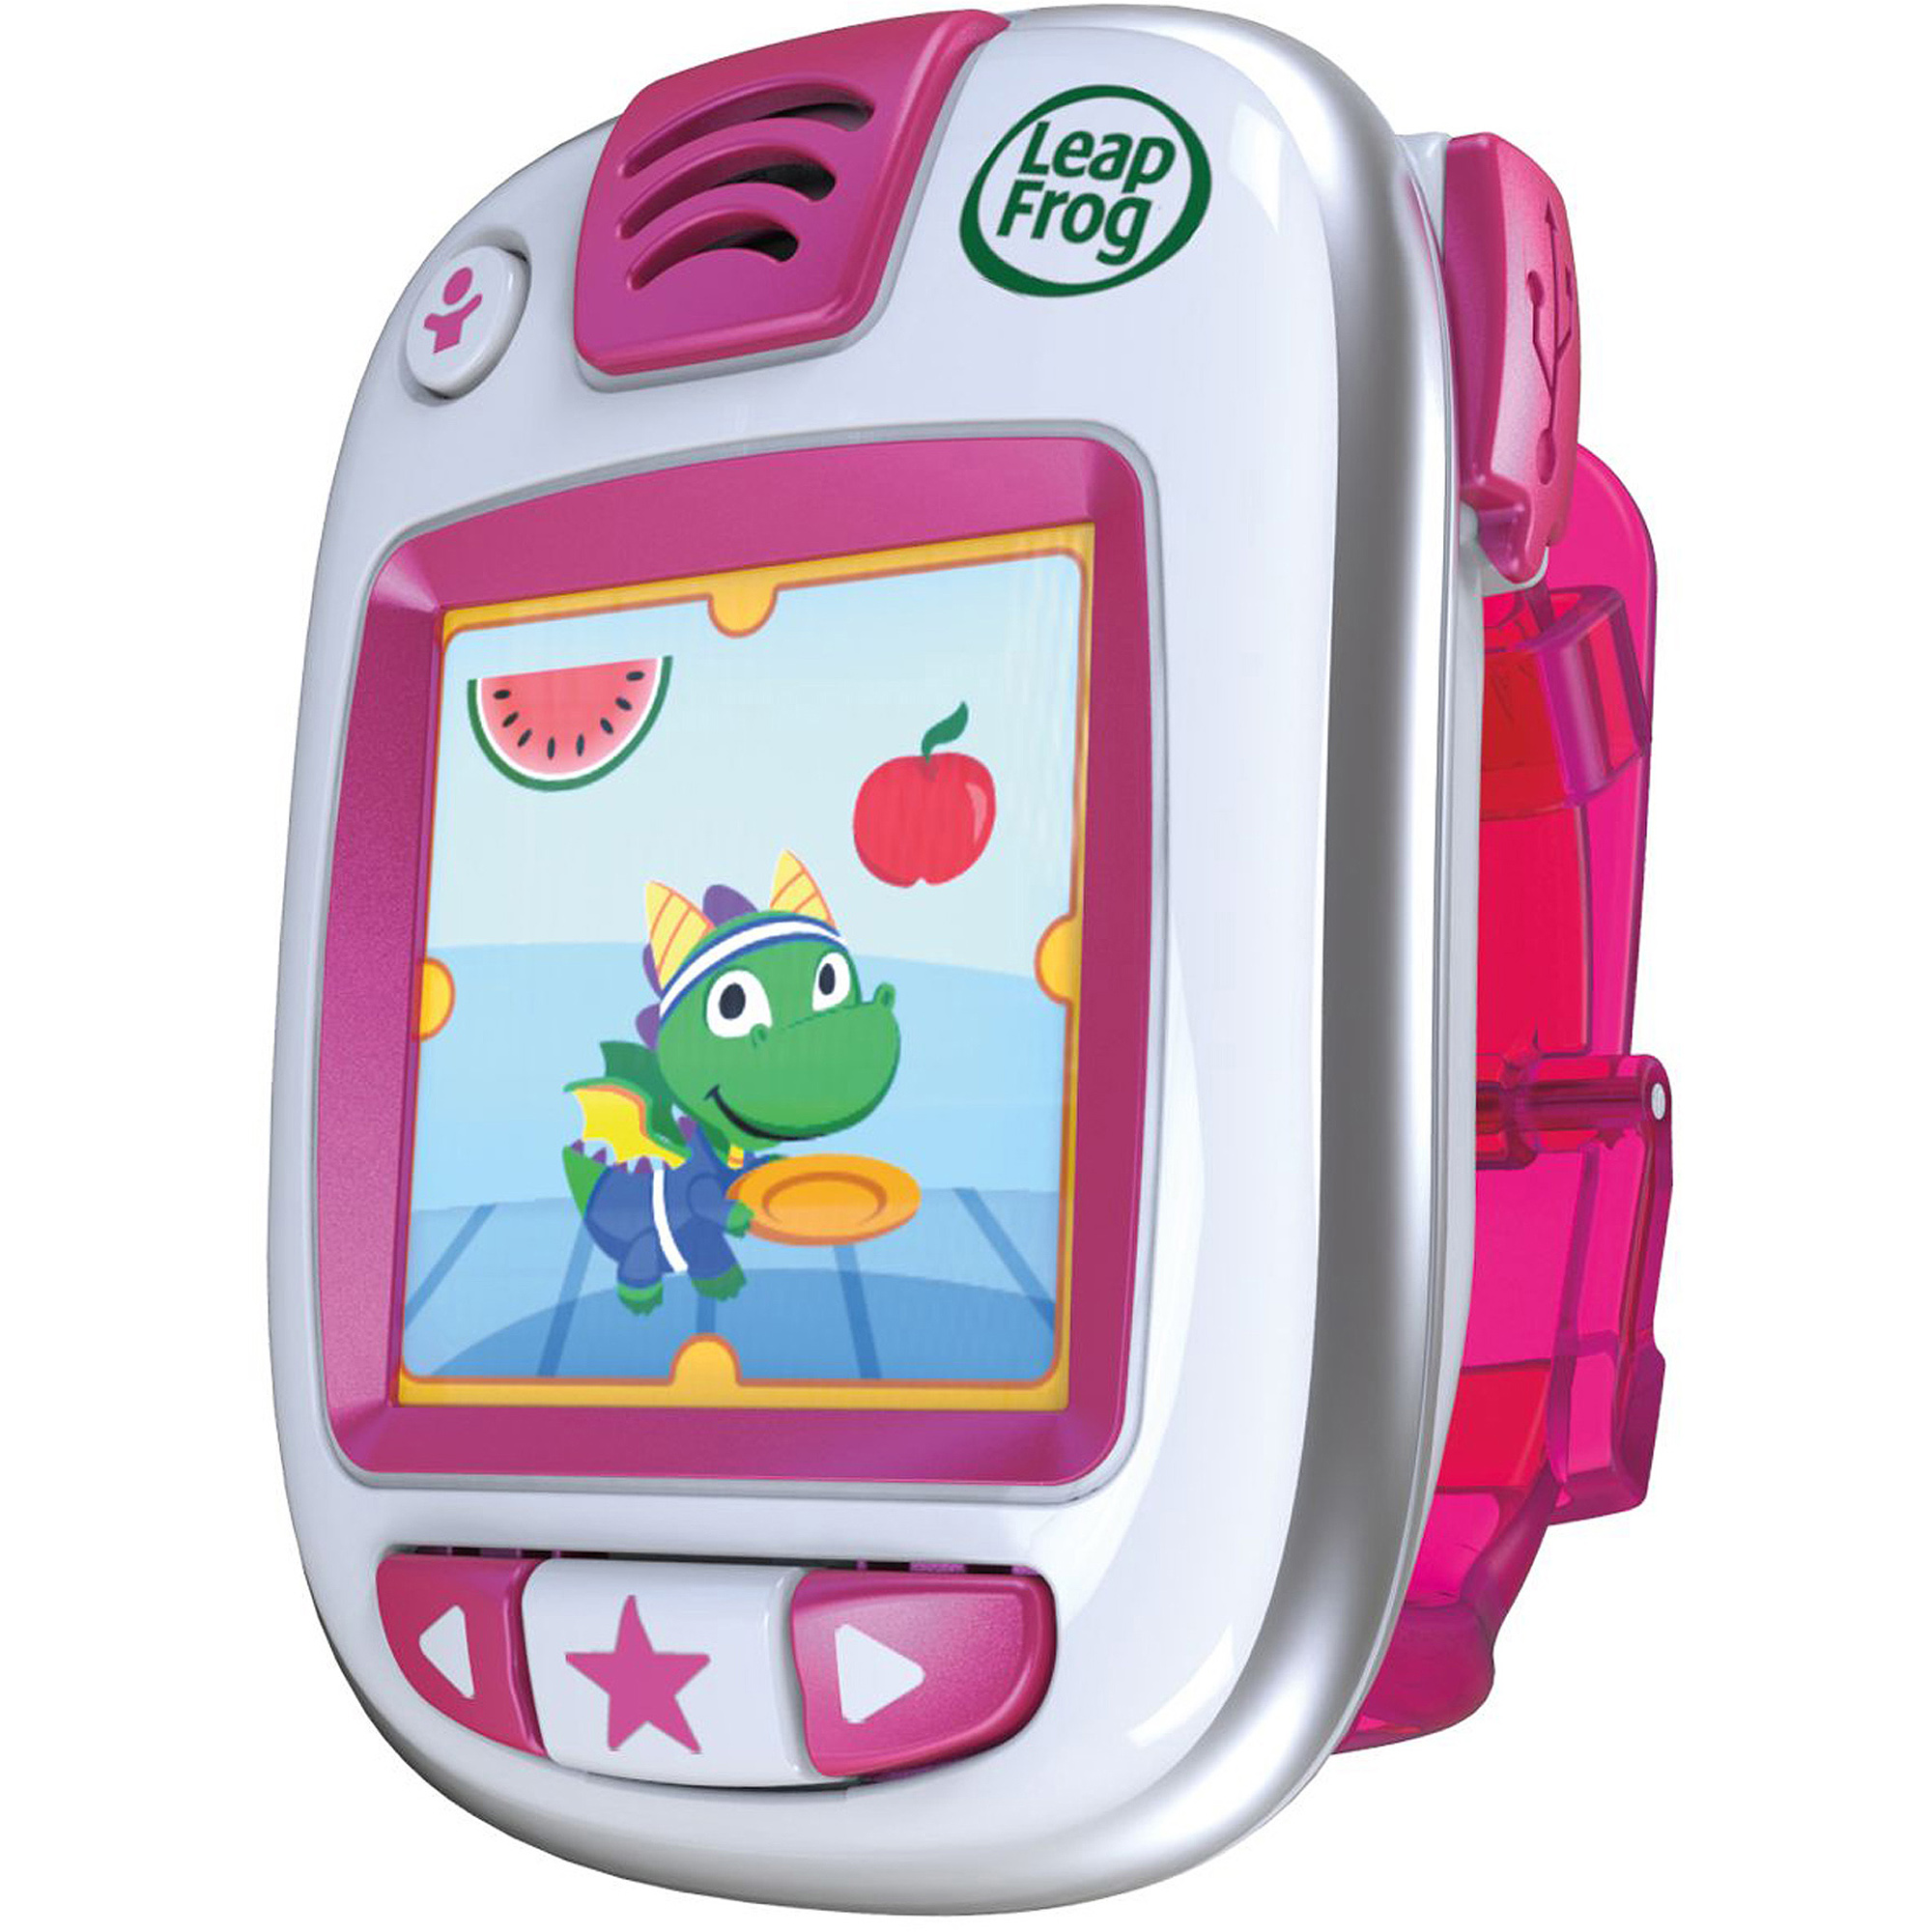 LeapFrog LeapBand in Green Pink or Blue Walmart